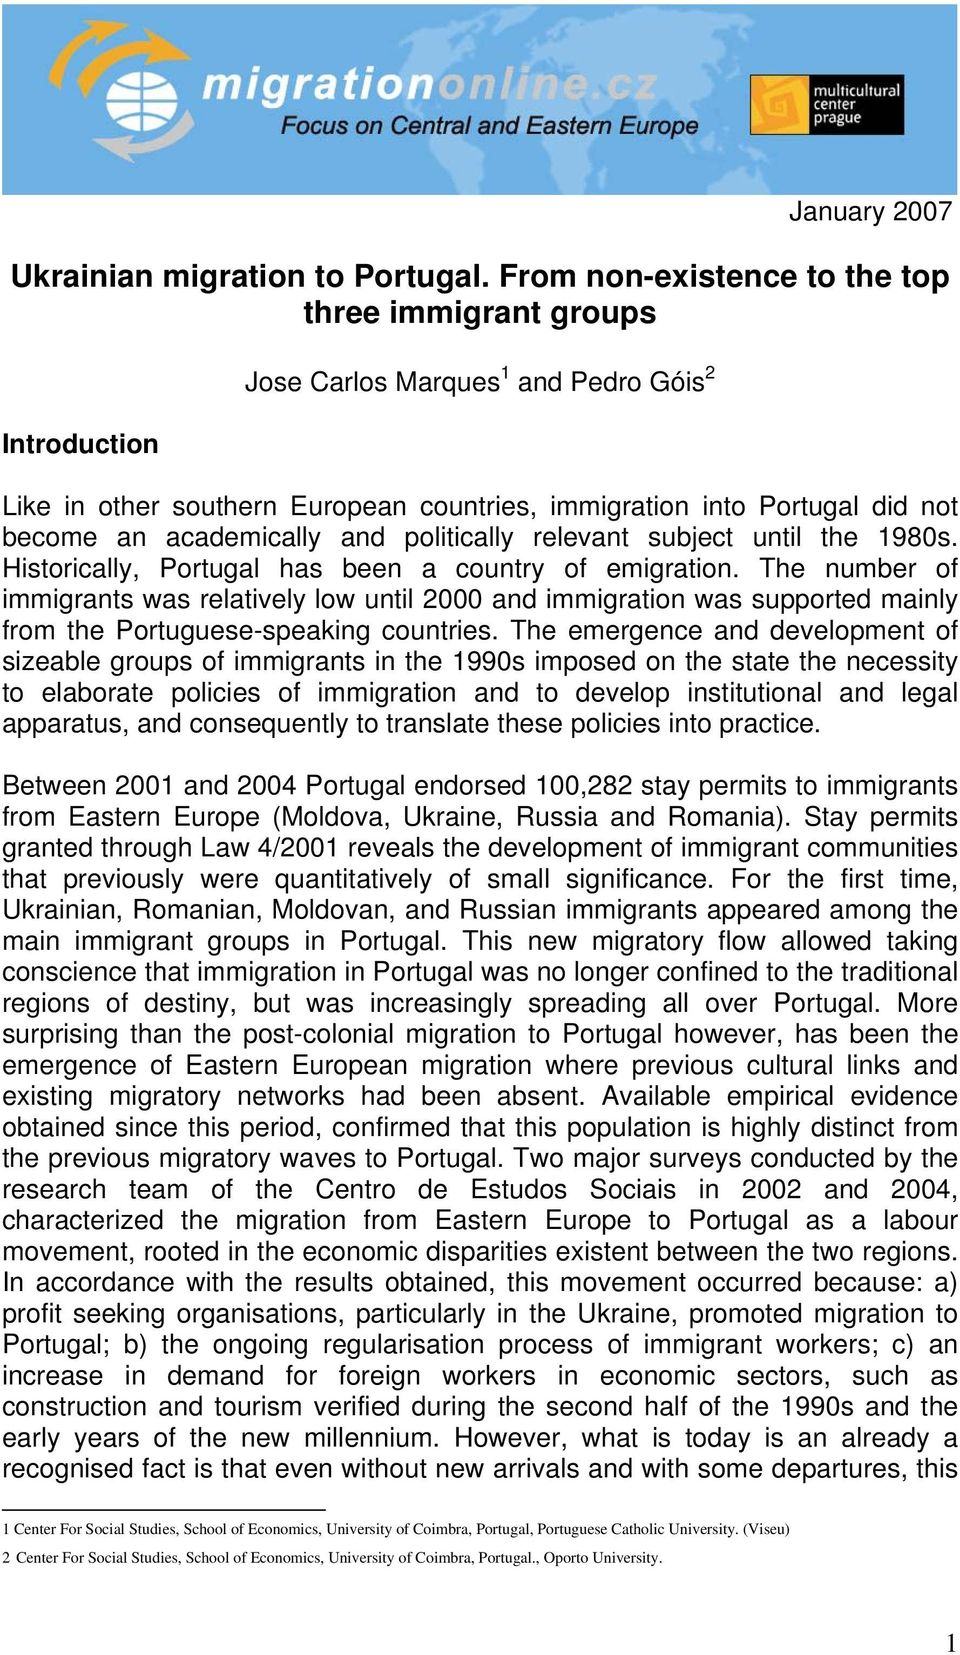 academically and politically relevant subject until the 1980s. Historically, Portugal has been a country of emigration.